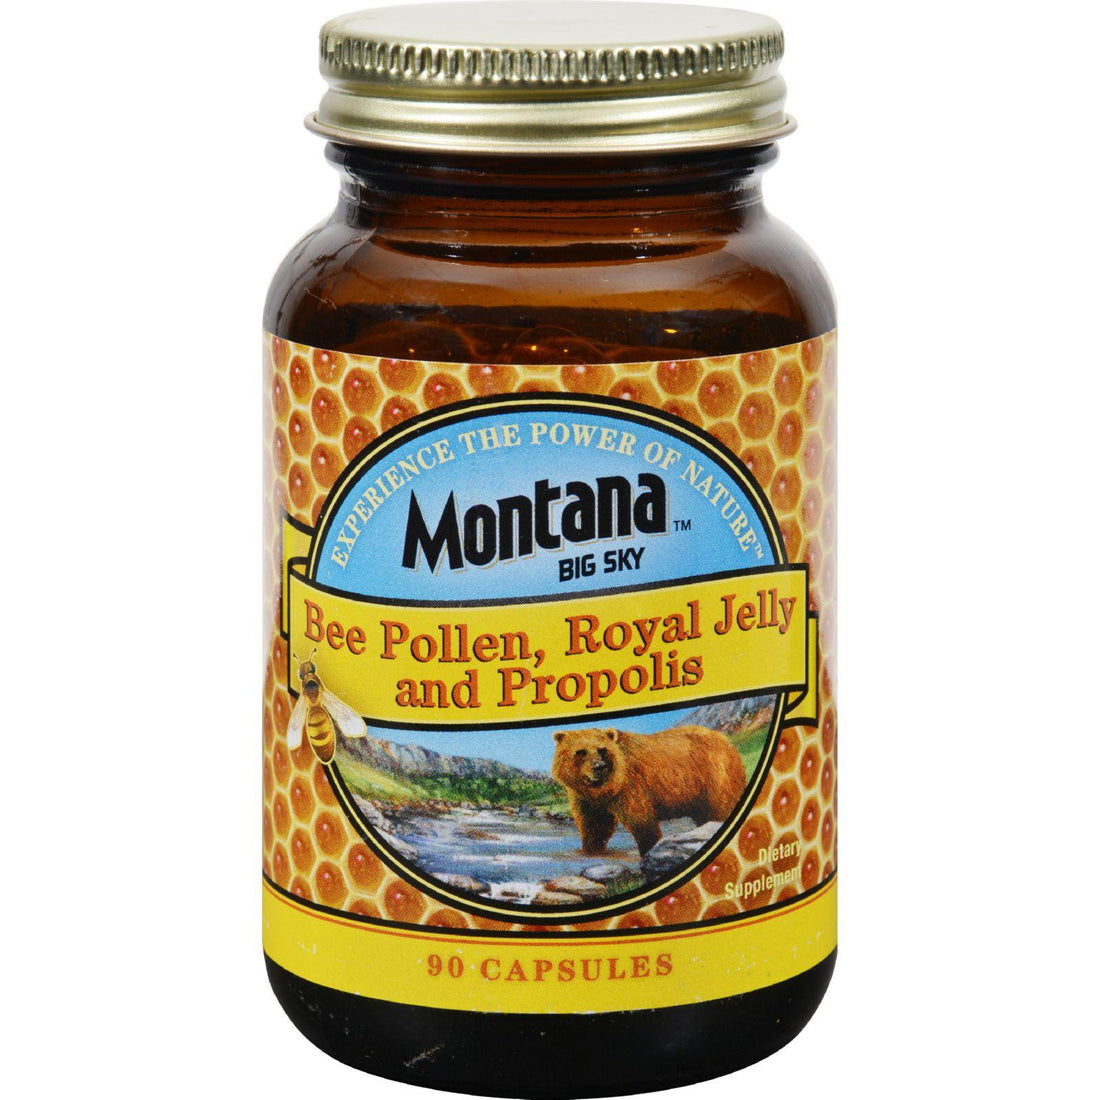 Mother Mantis: Montana Bee Pollen Royal Jelly And Propolis - 90 Capsules Montana Big Sky